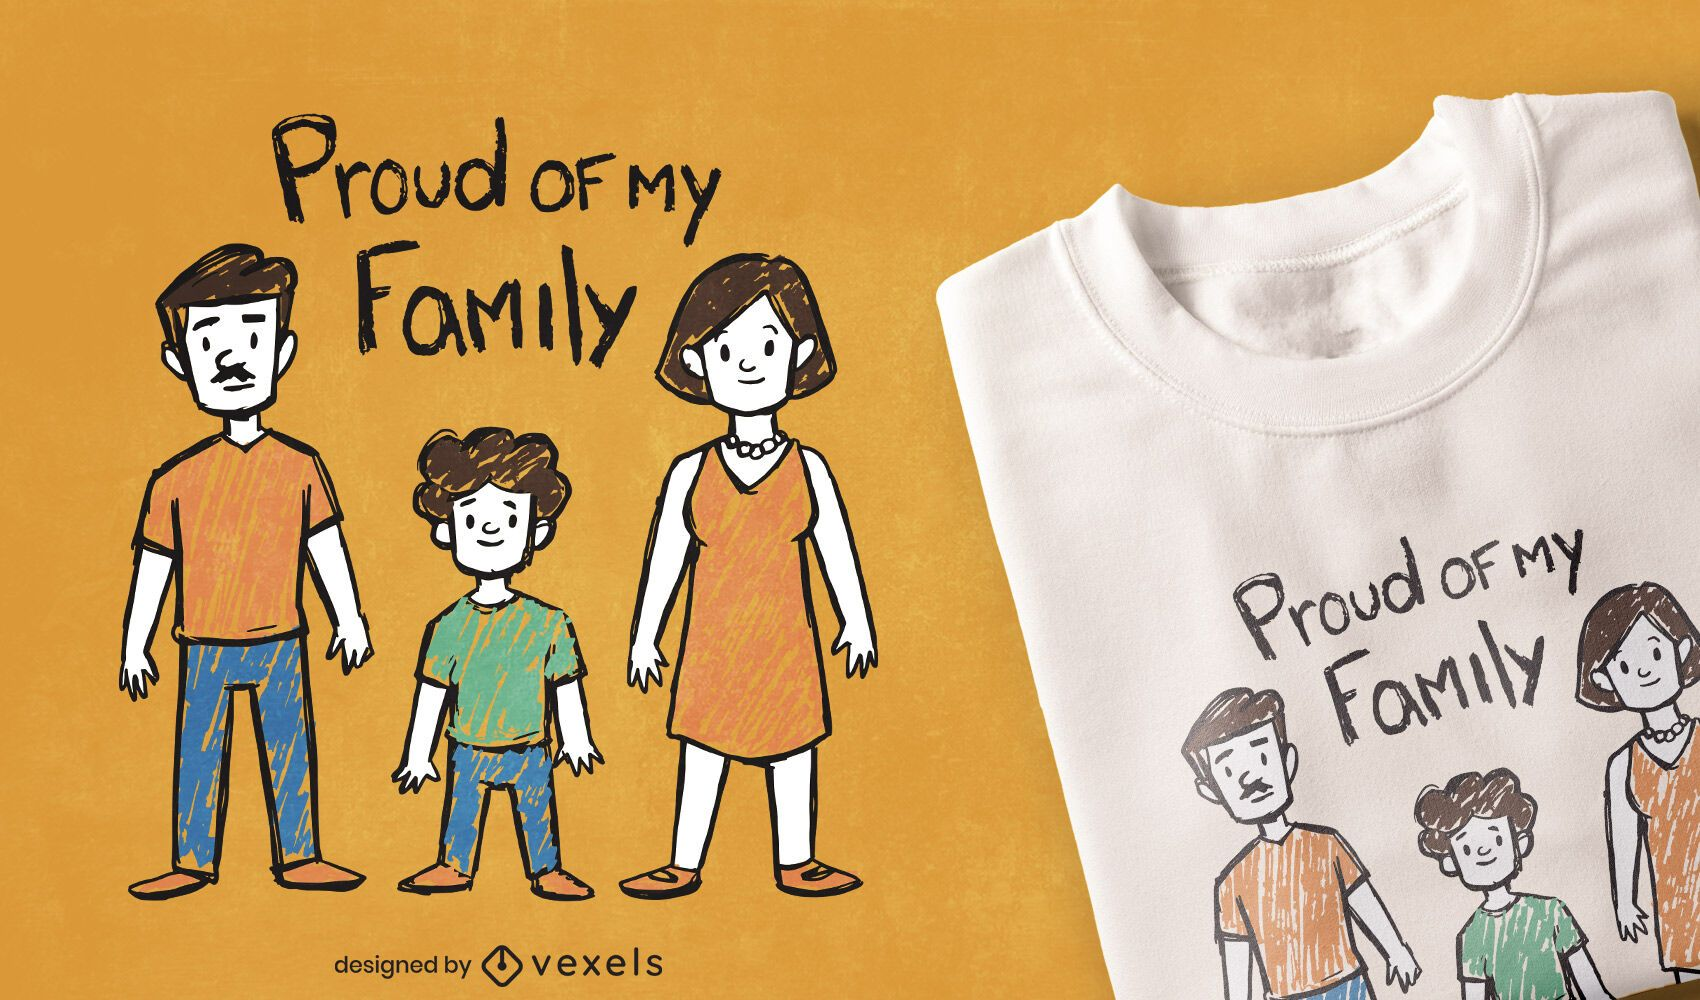 Proud of my family t-shirt design